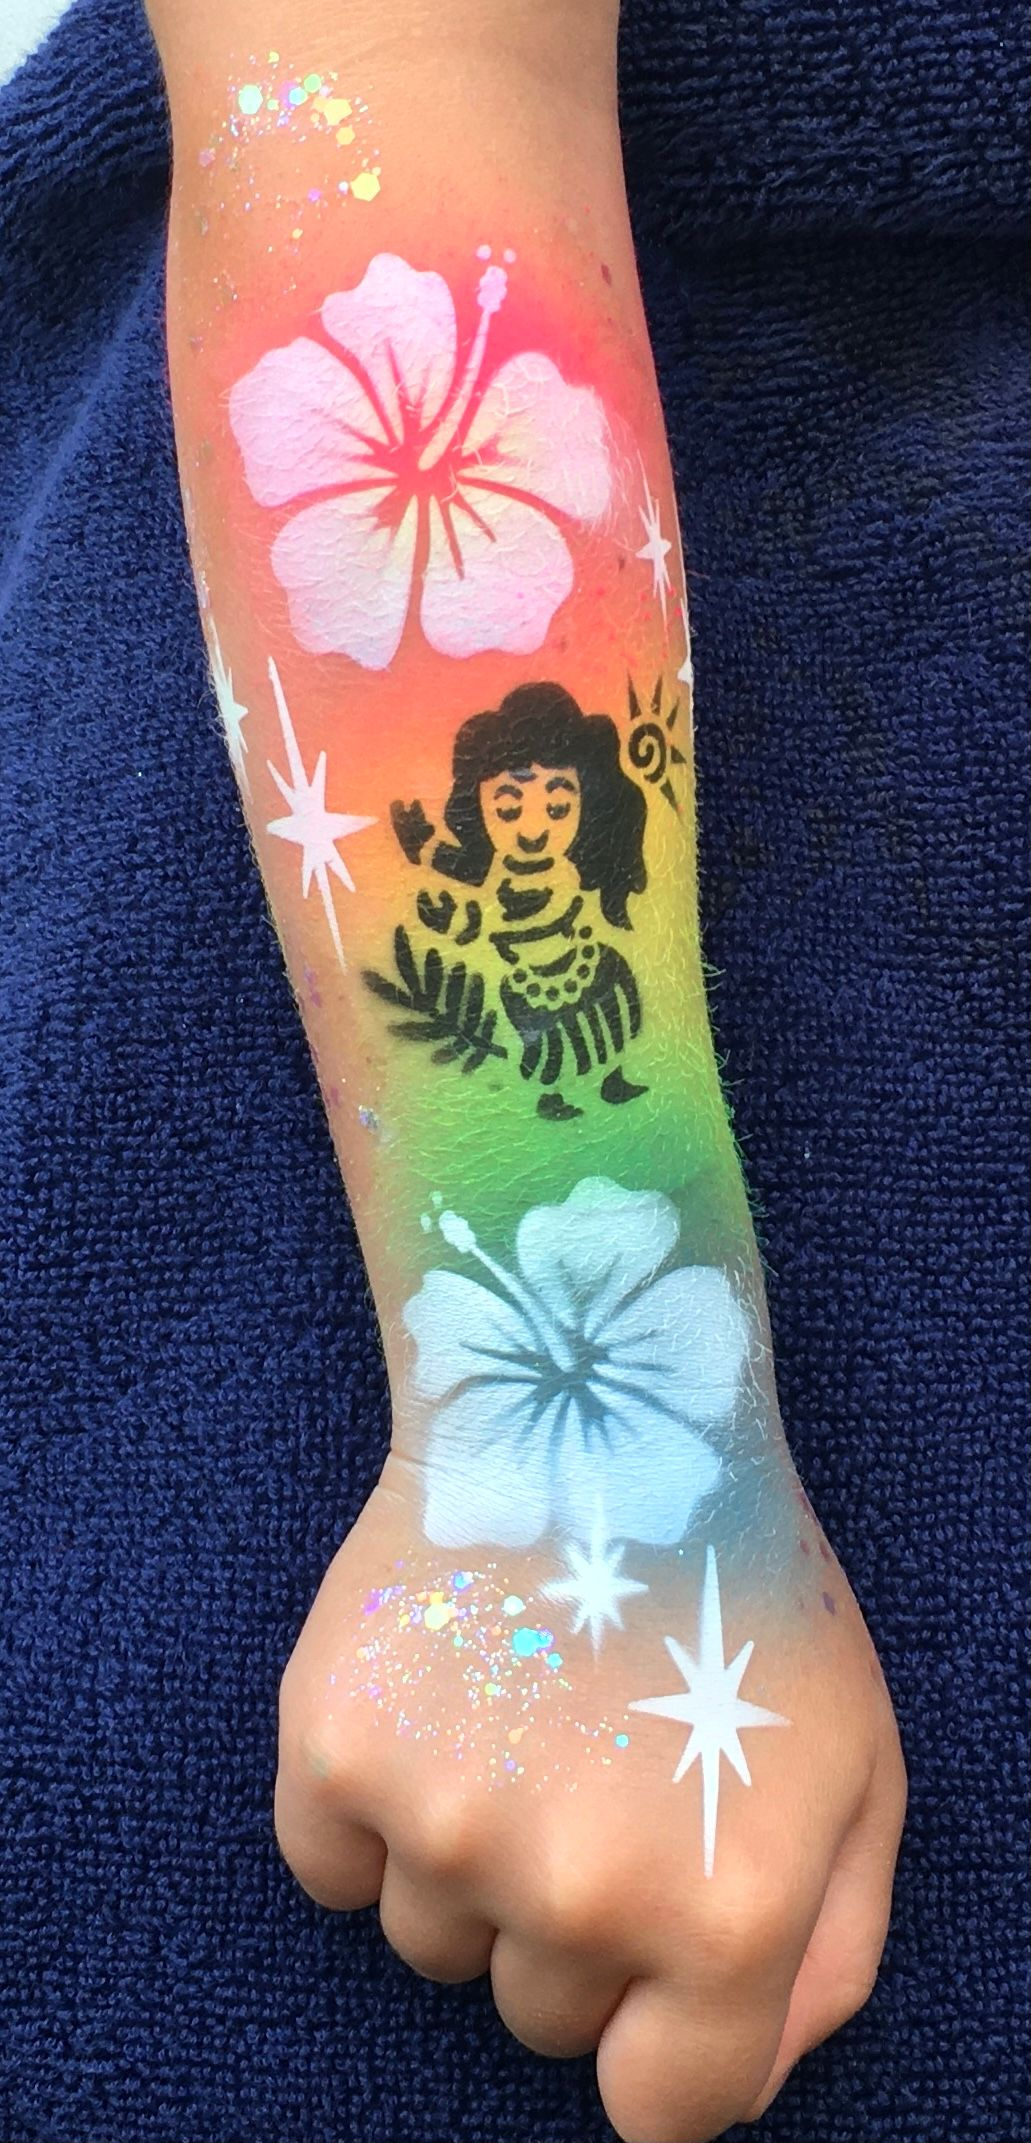 Face Painting by Valery - Airbrush tattoo - Hula Girl